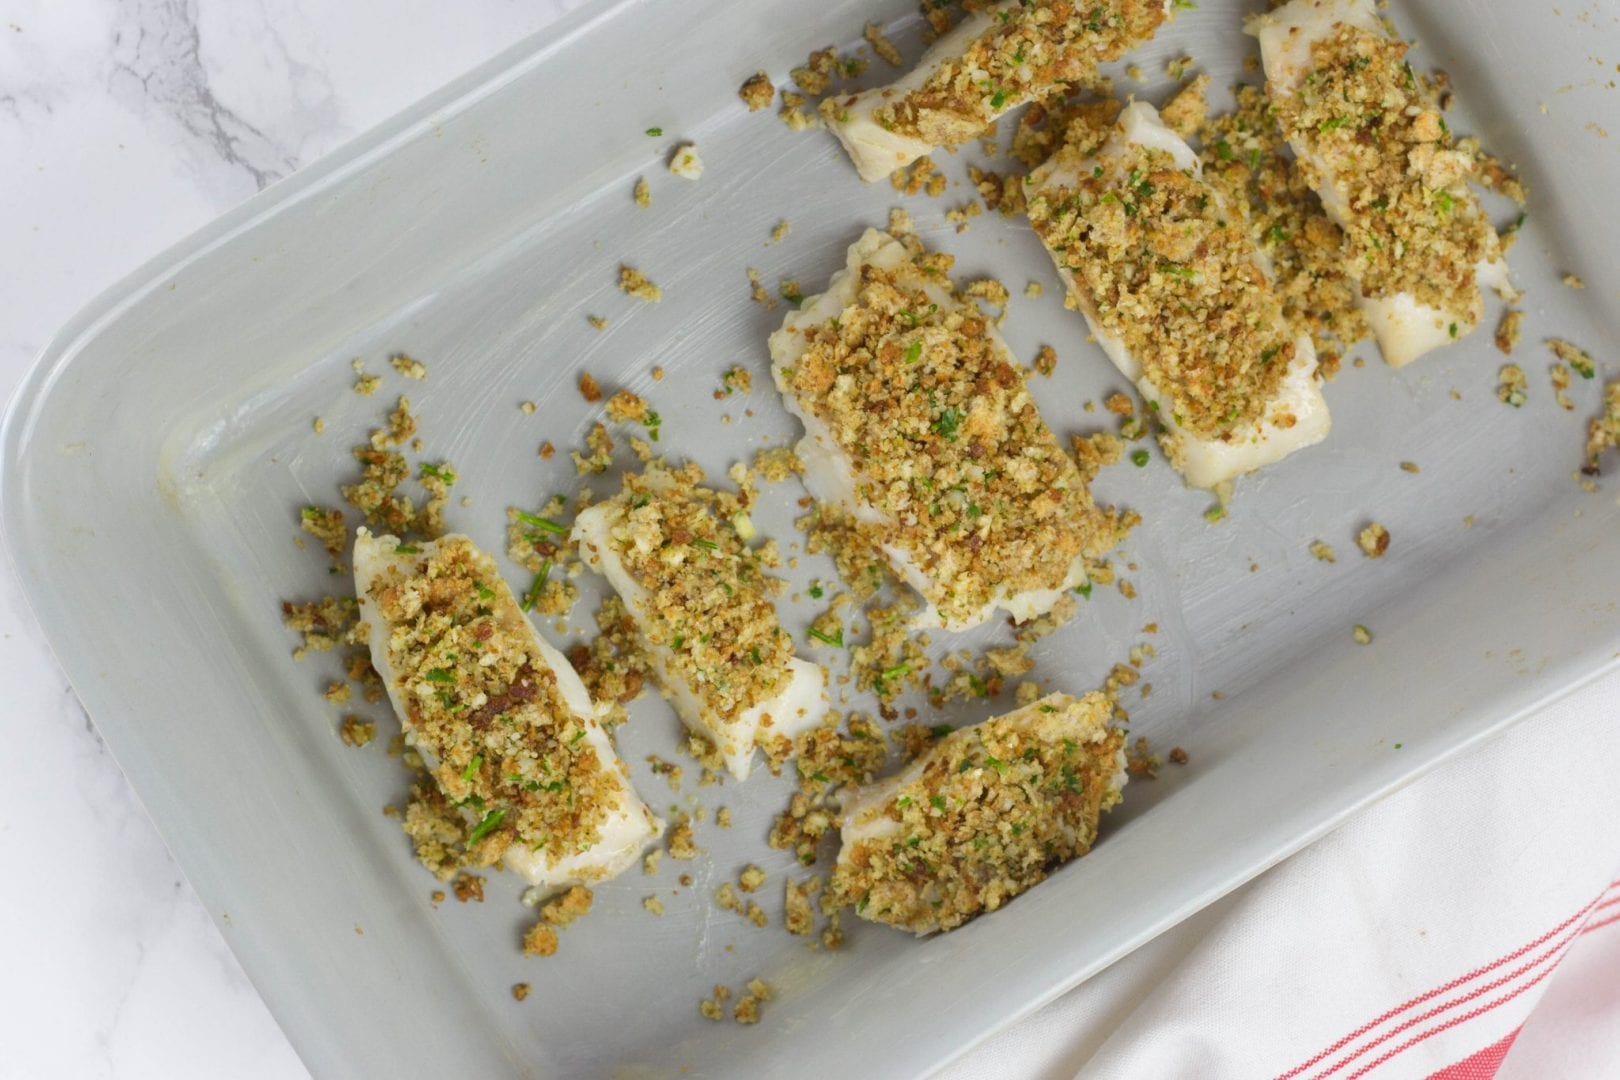 Herb crusted fish fillets - enjoy these cod fillets with a parmesan herb and crumb crust